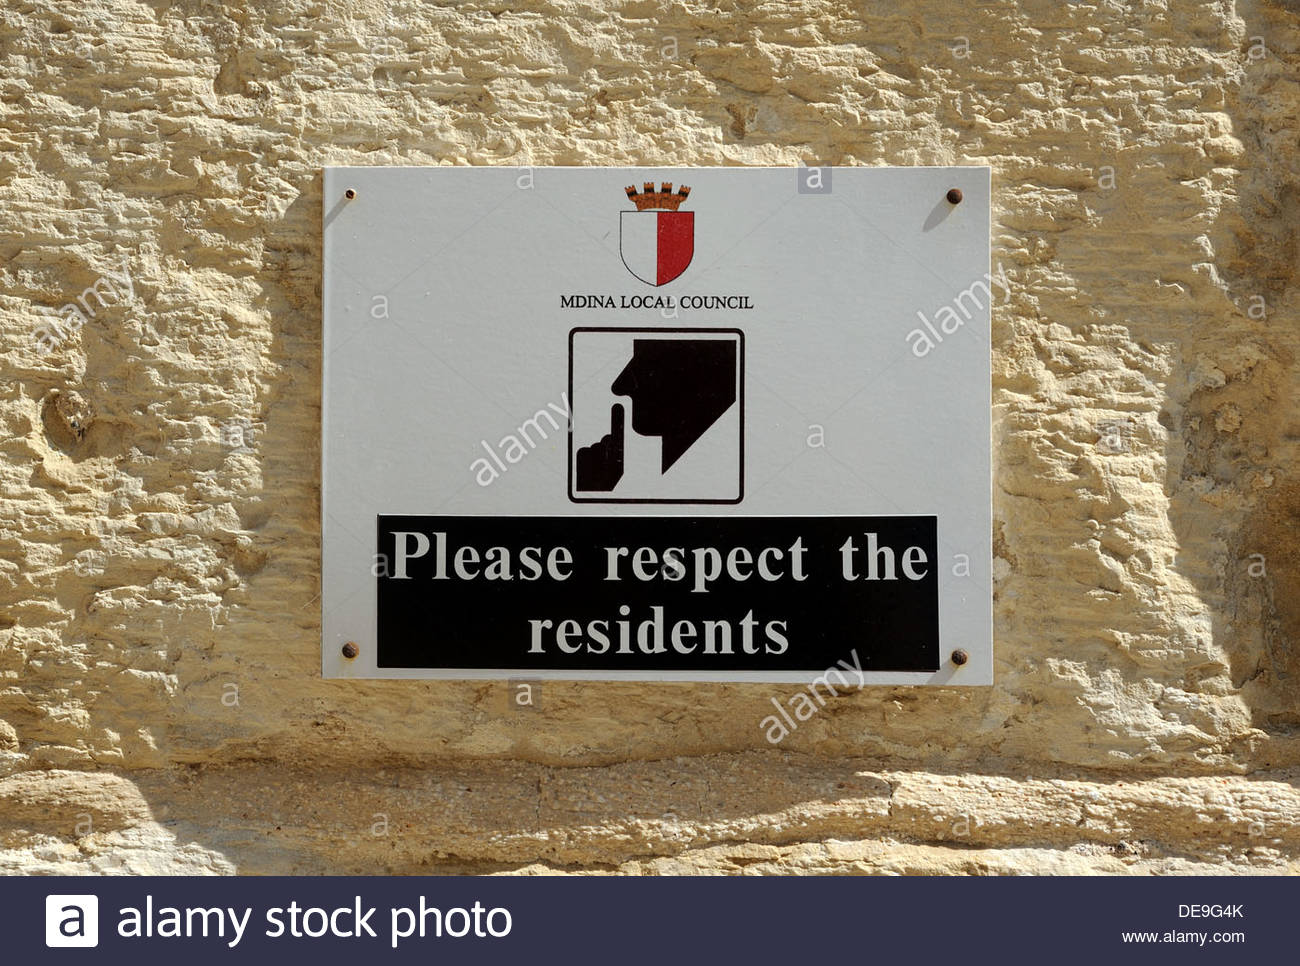 Mdina Malta Sign - please respect the residents. - Stock Image